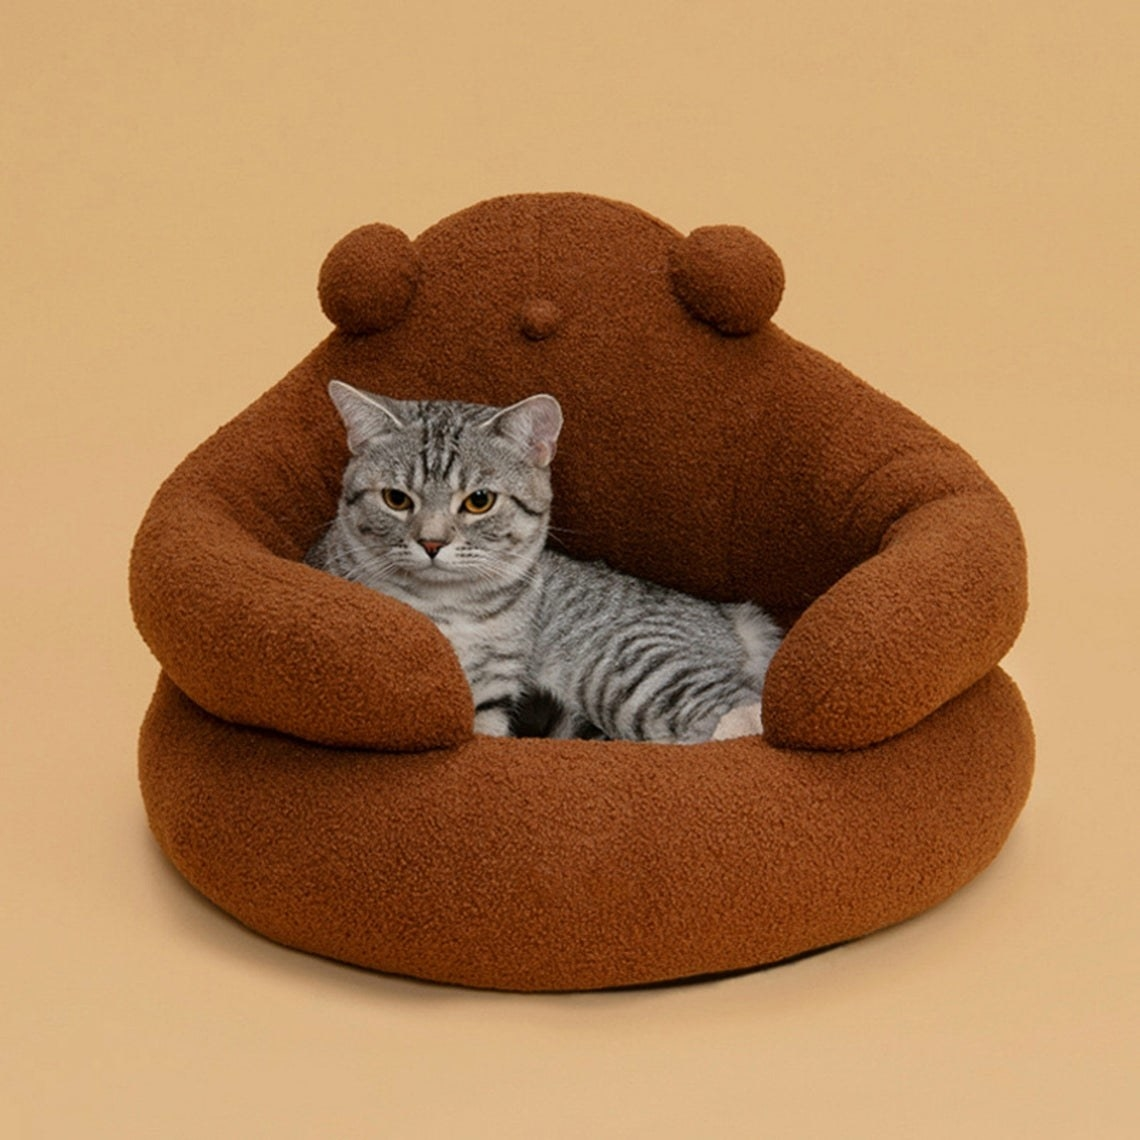 Round plush cat bed designed to look like pet is being hugged by a round, soft critter when they lie inside